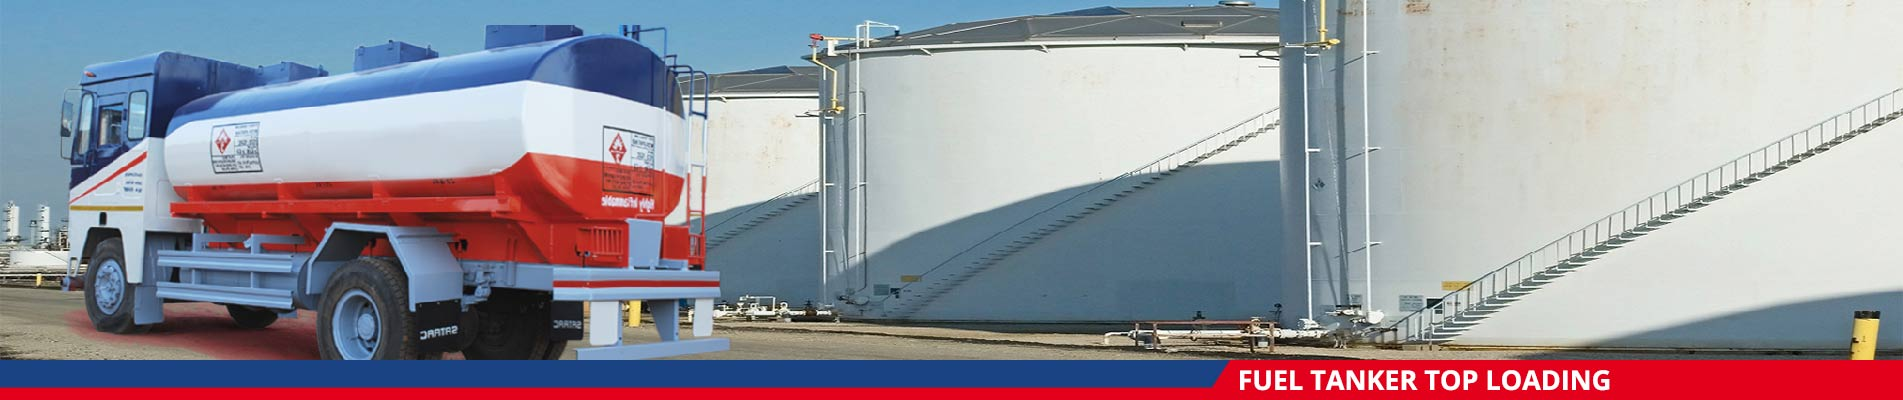 Fuel Tanker Top Loading Manufacturers in India